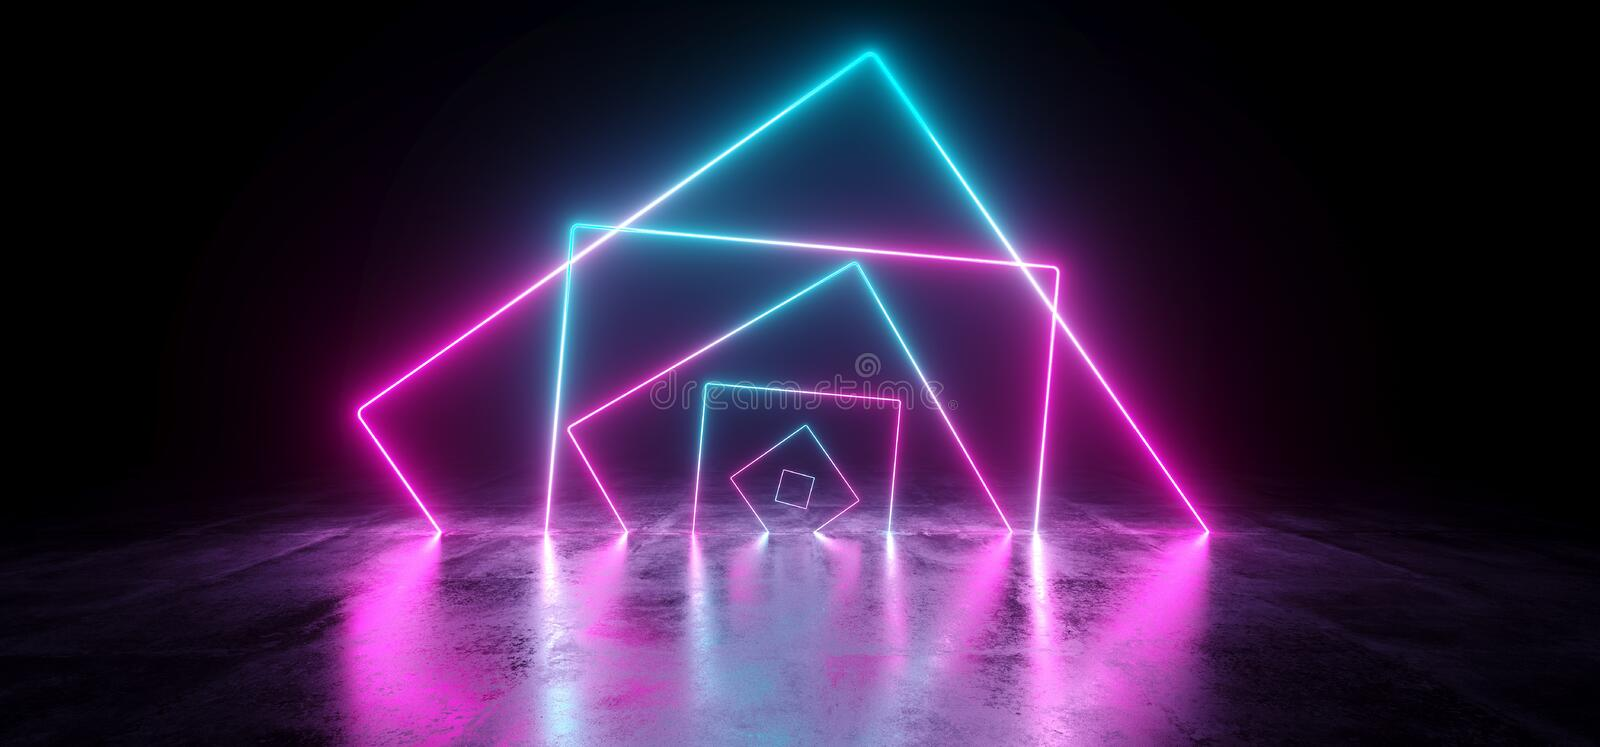 Sci-Fi Futuristic Chaotic Abstract Gradient Blue Purple Pink Neon Glowing Rectangle Cube Square Shape Tubes On Reflection stock illustration